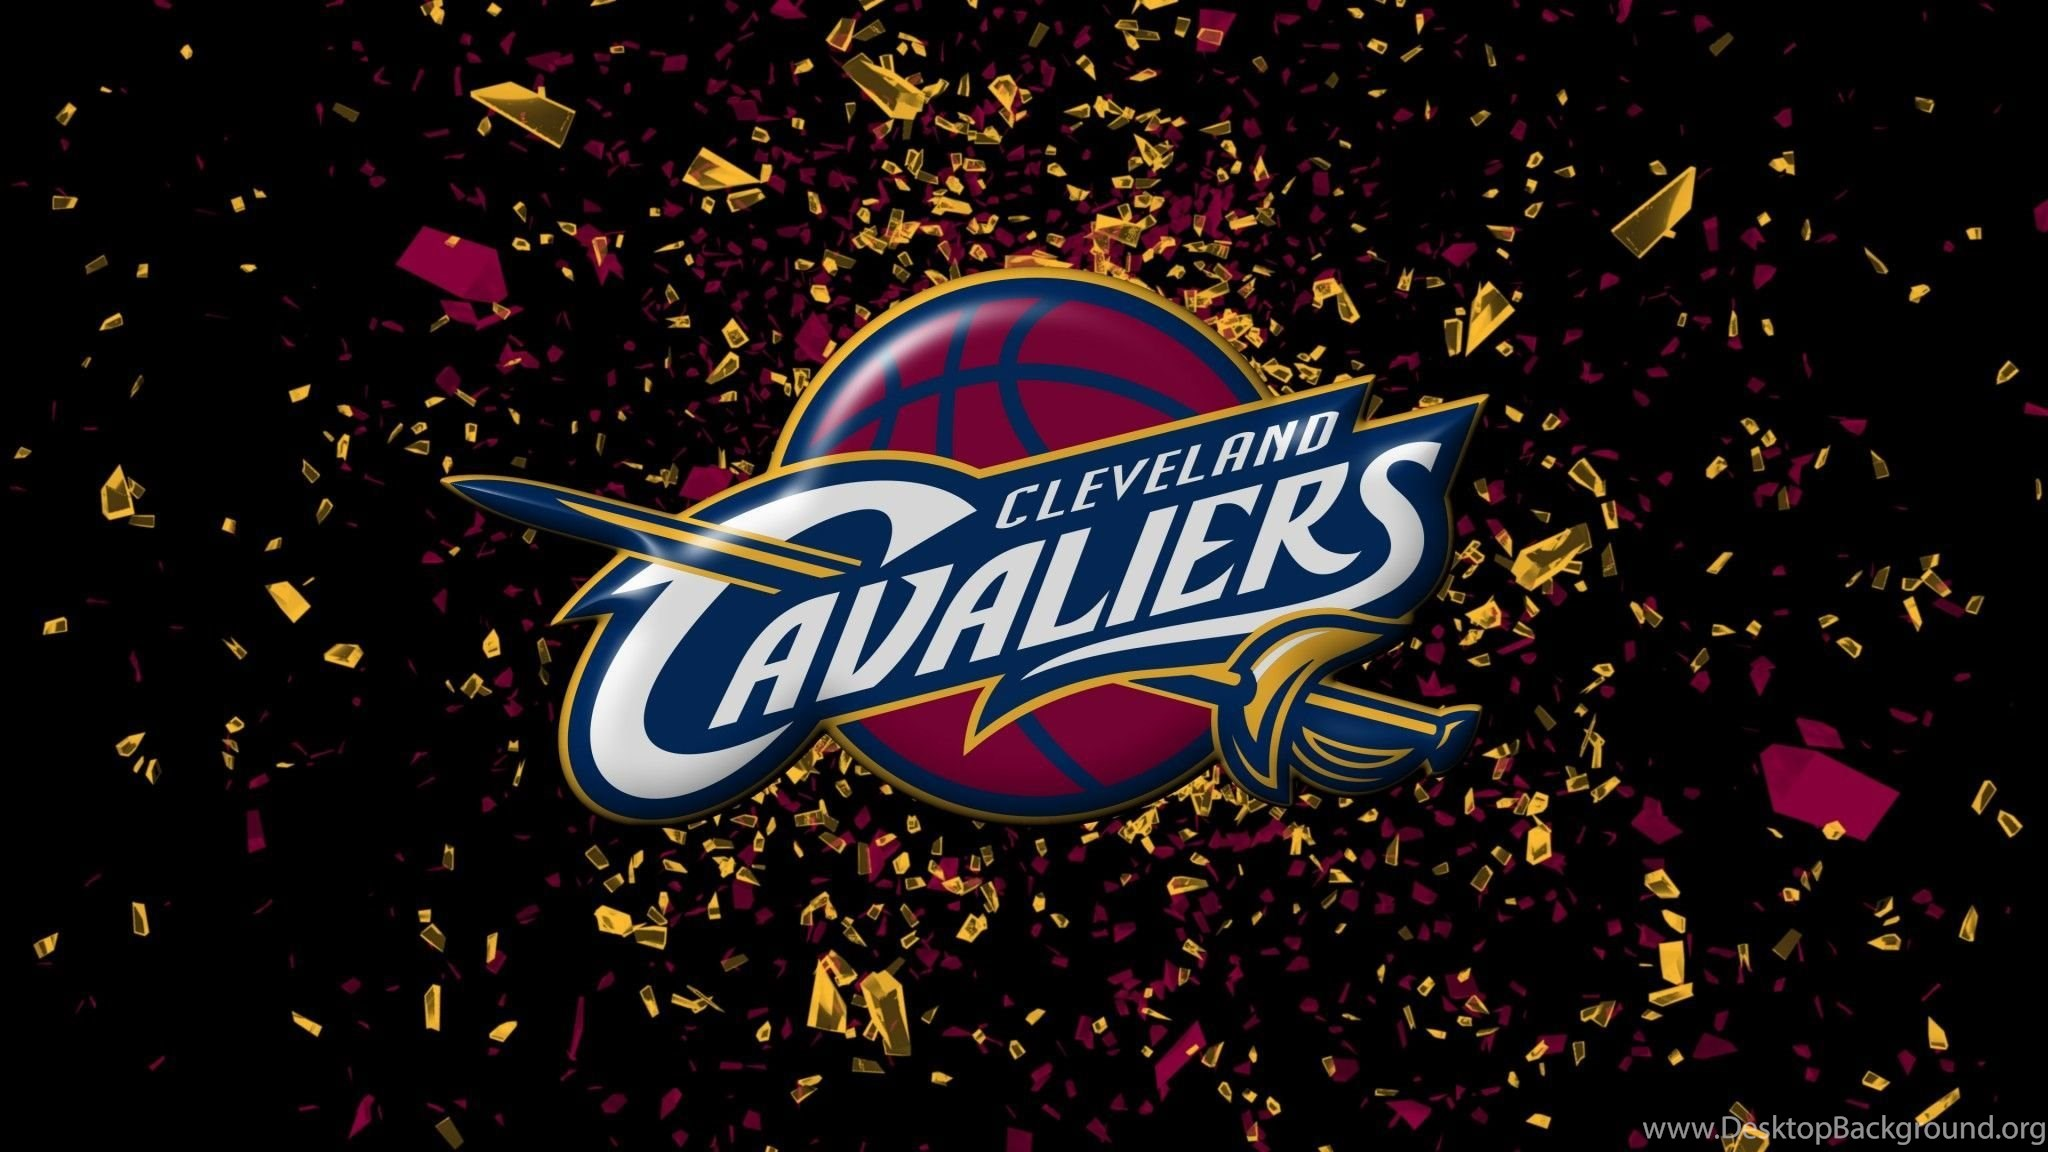 Android Cleveland Cavaliers Wallpapers Desktop Background